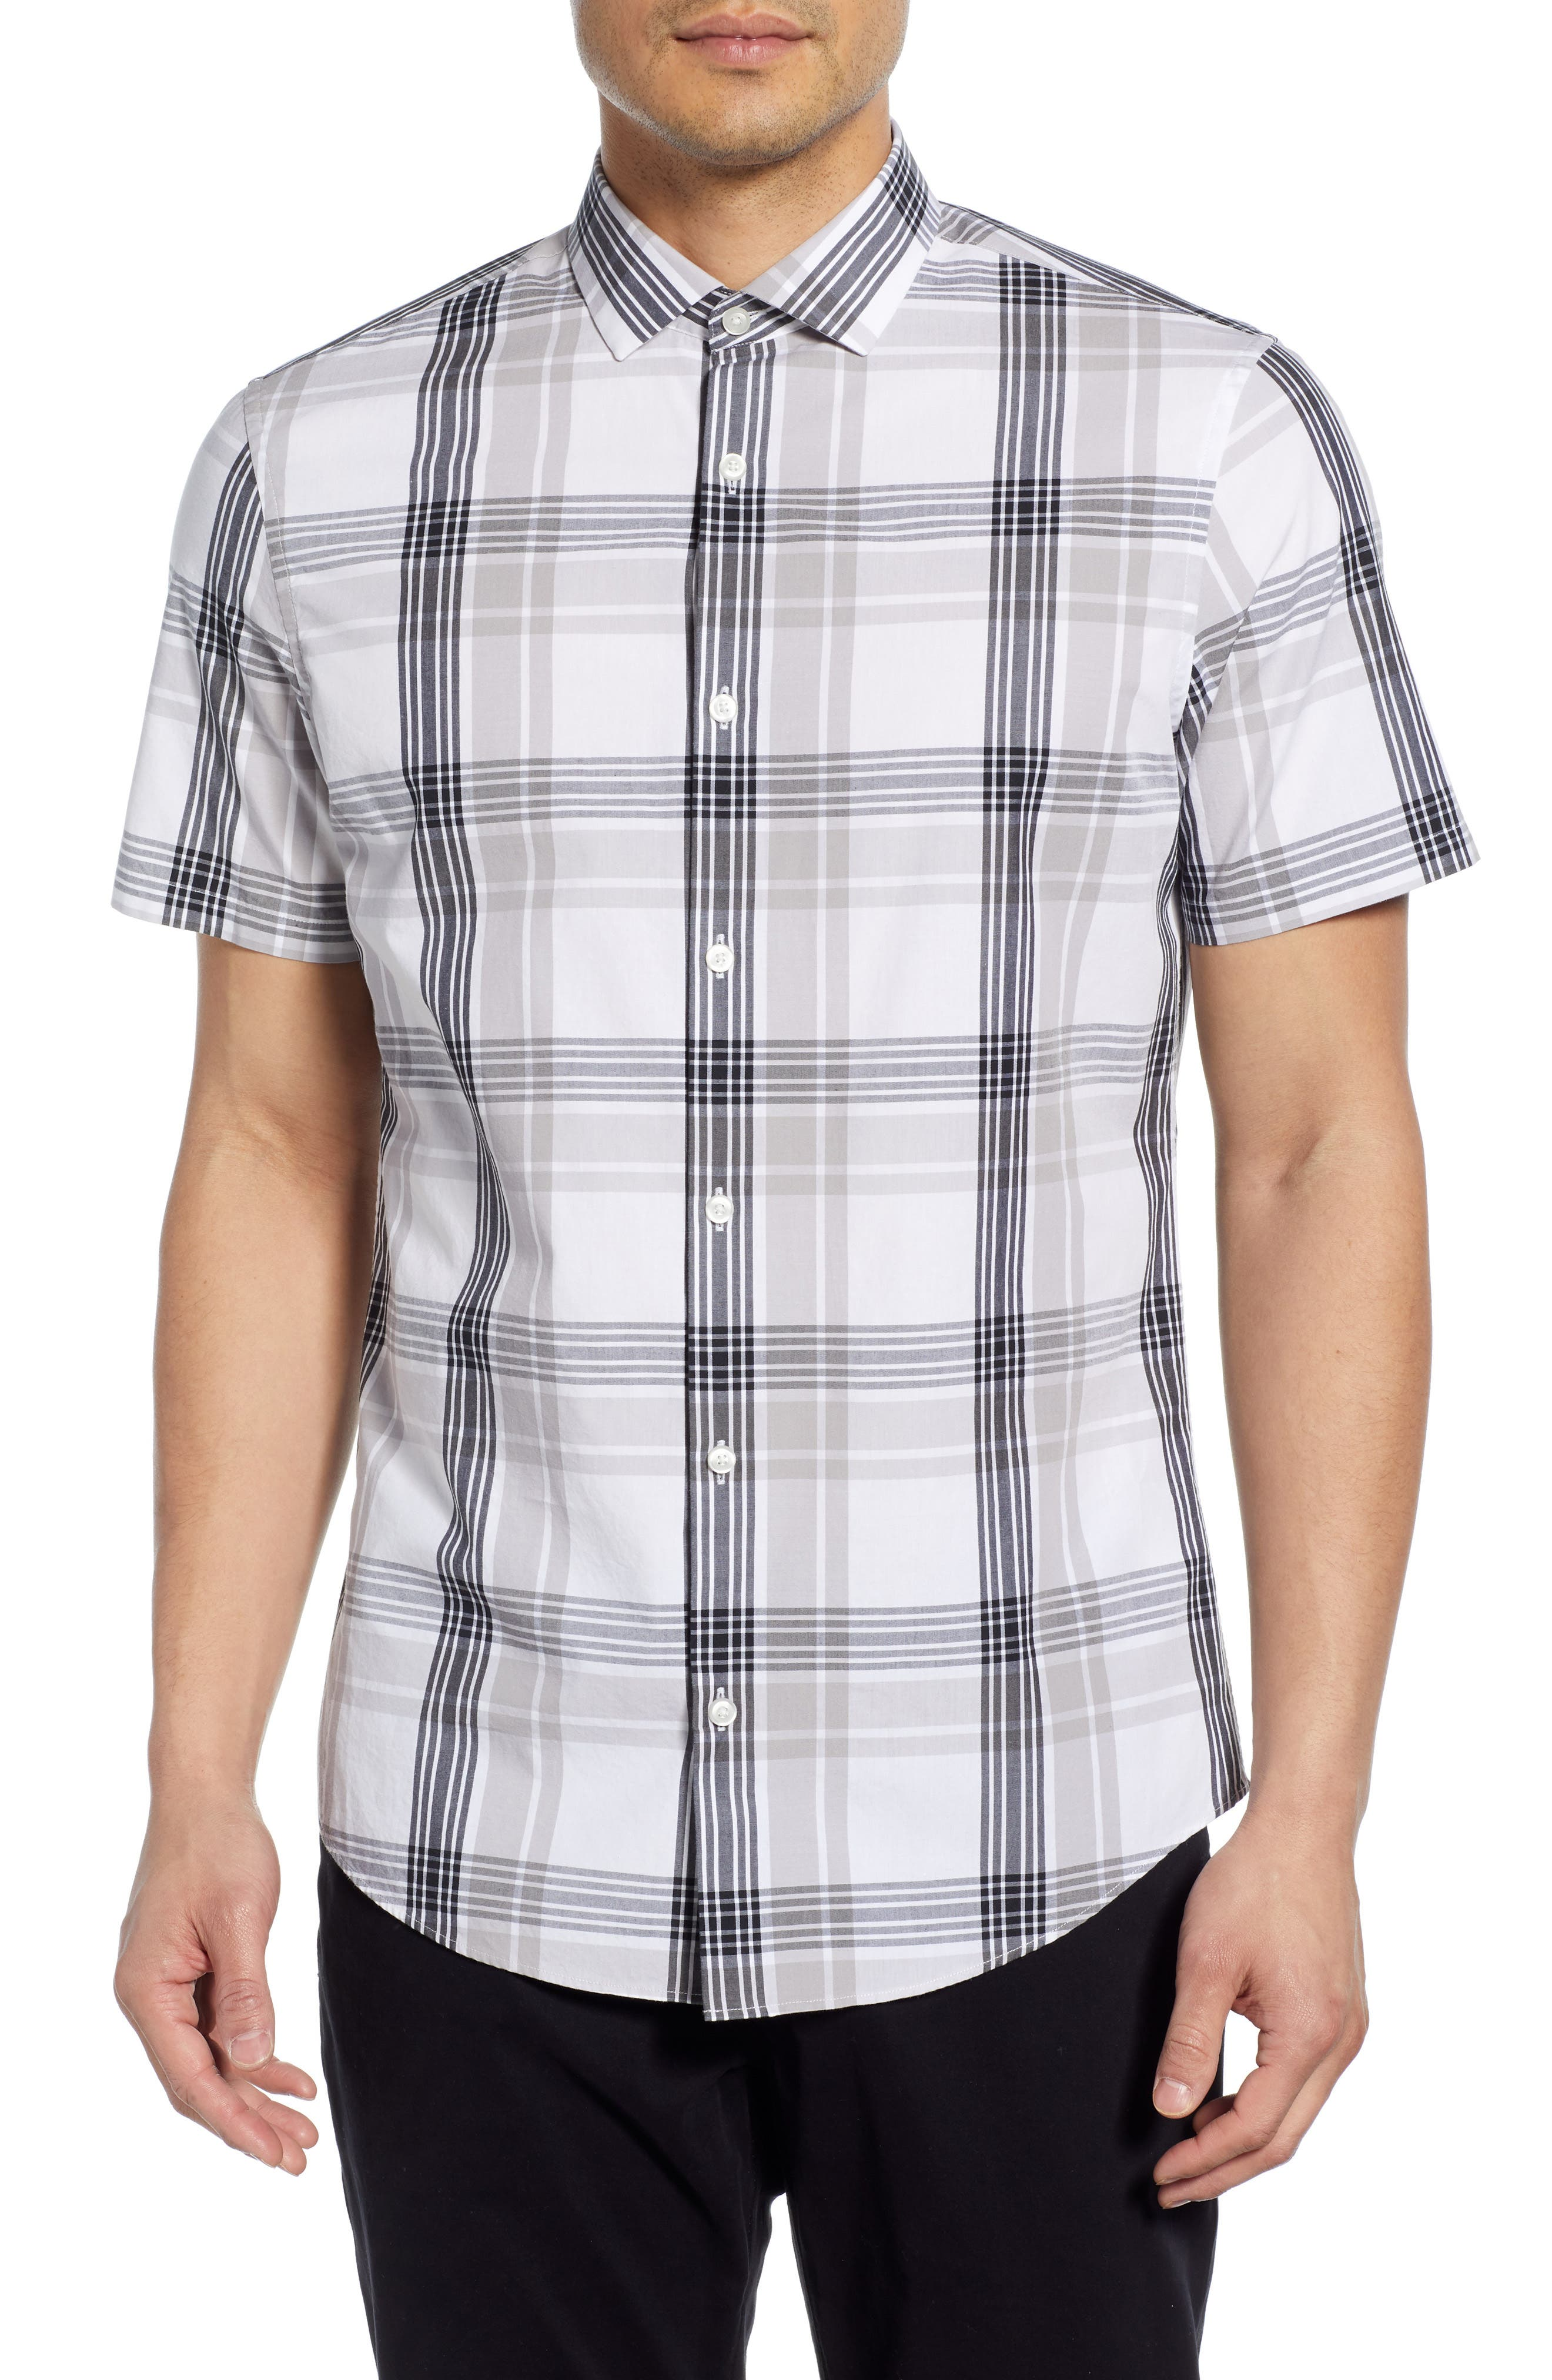 Calibrate Plaid Short Sleeve Button-Up Sport Shirt, White